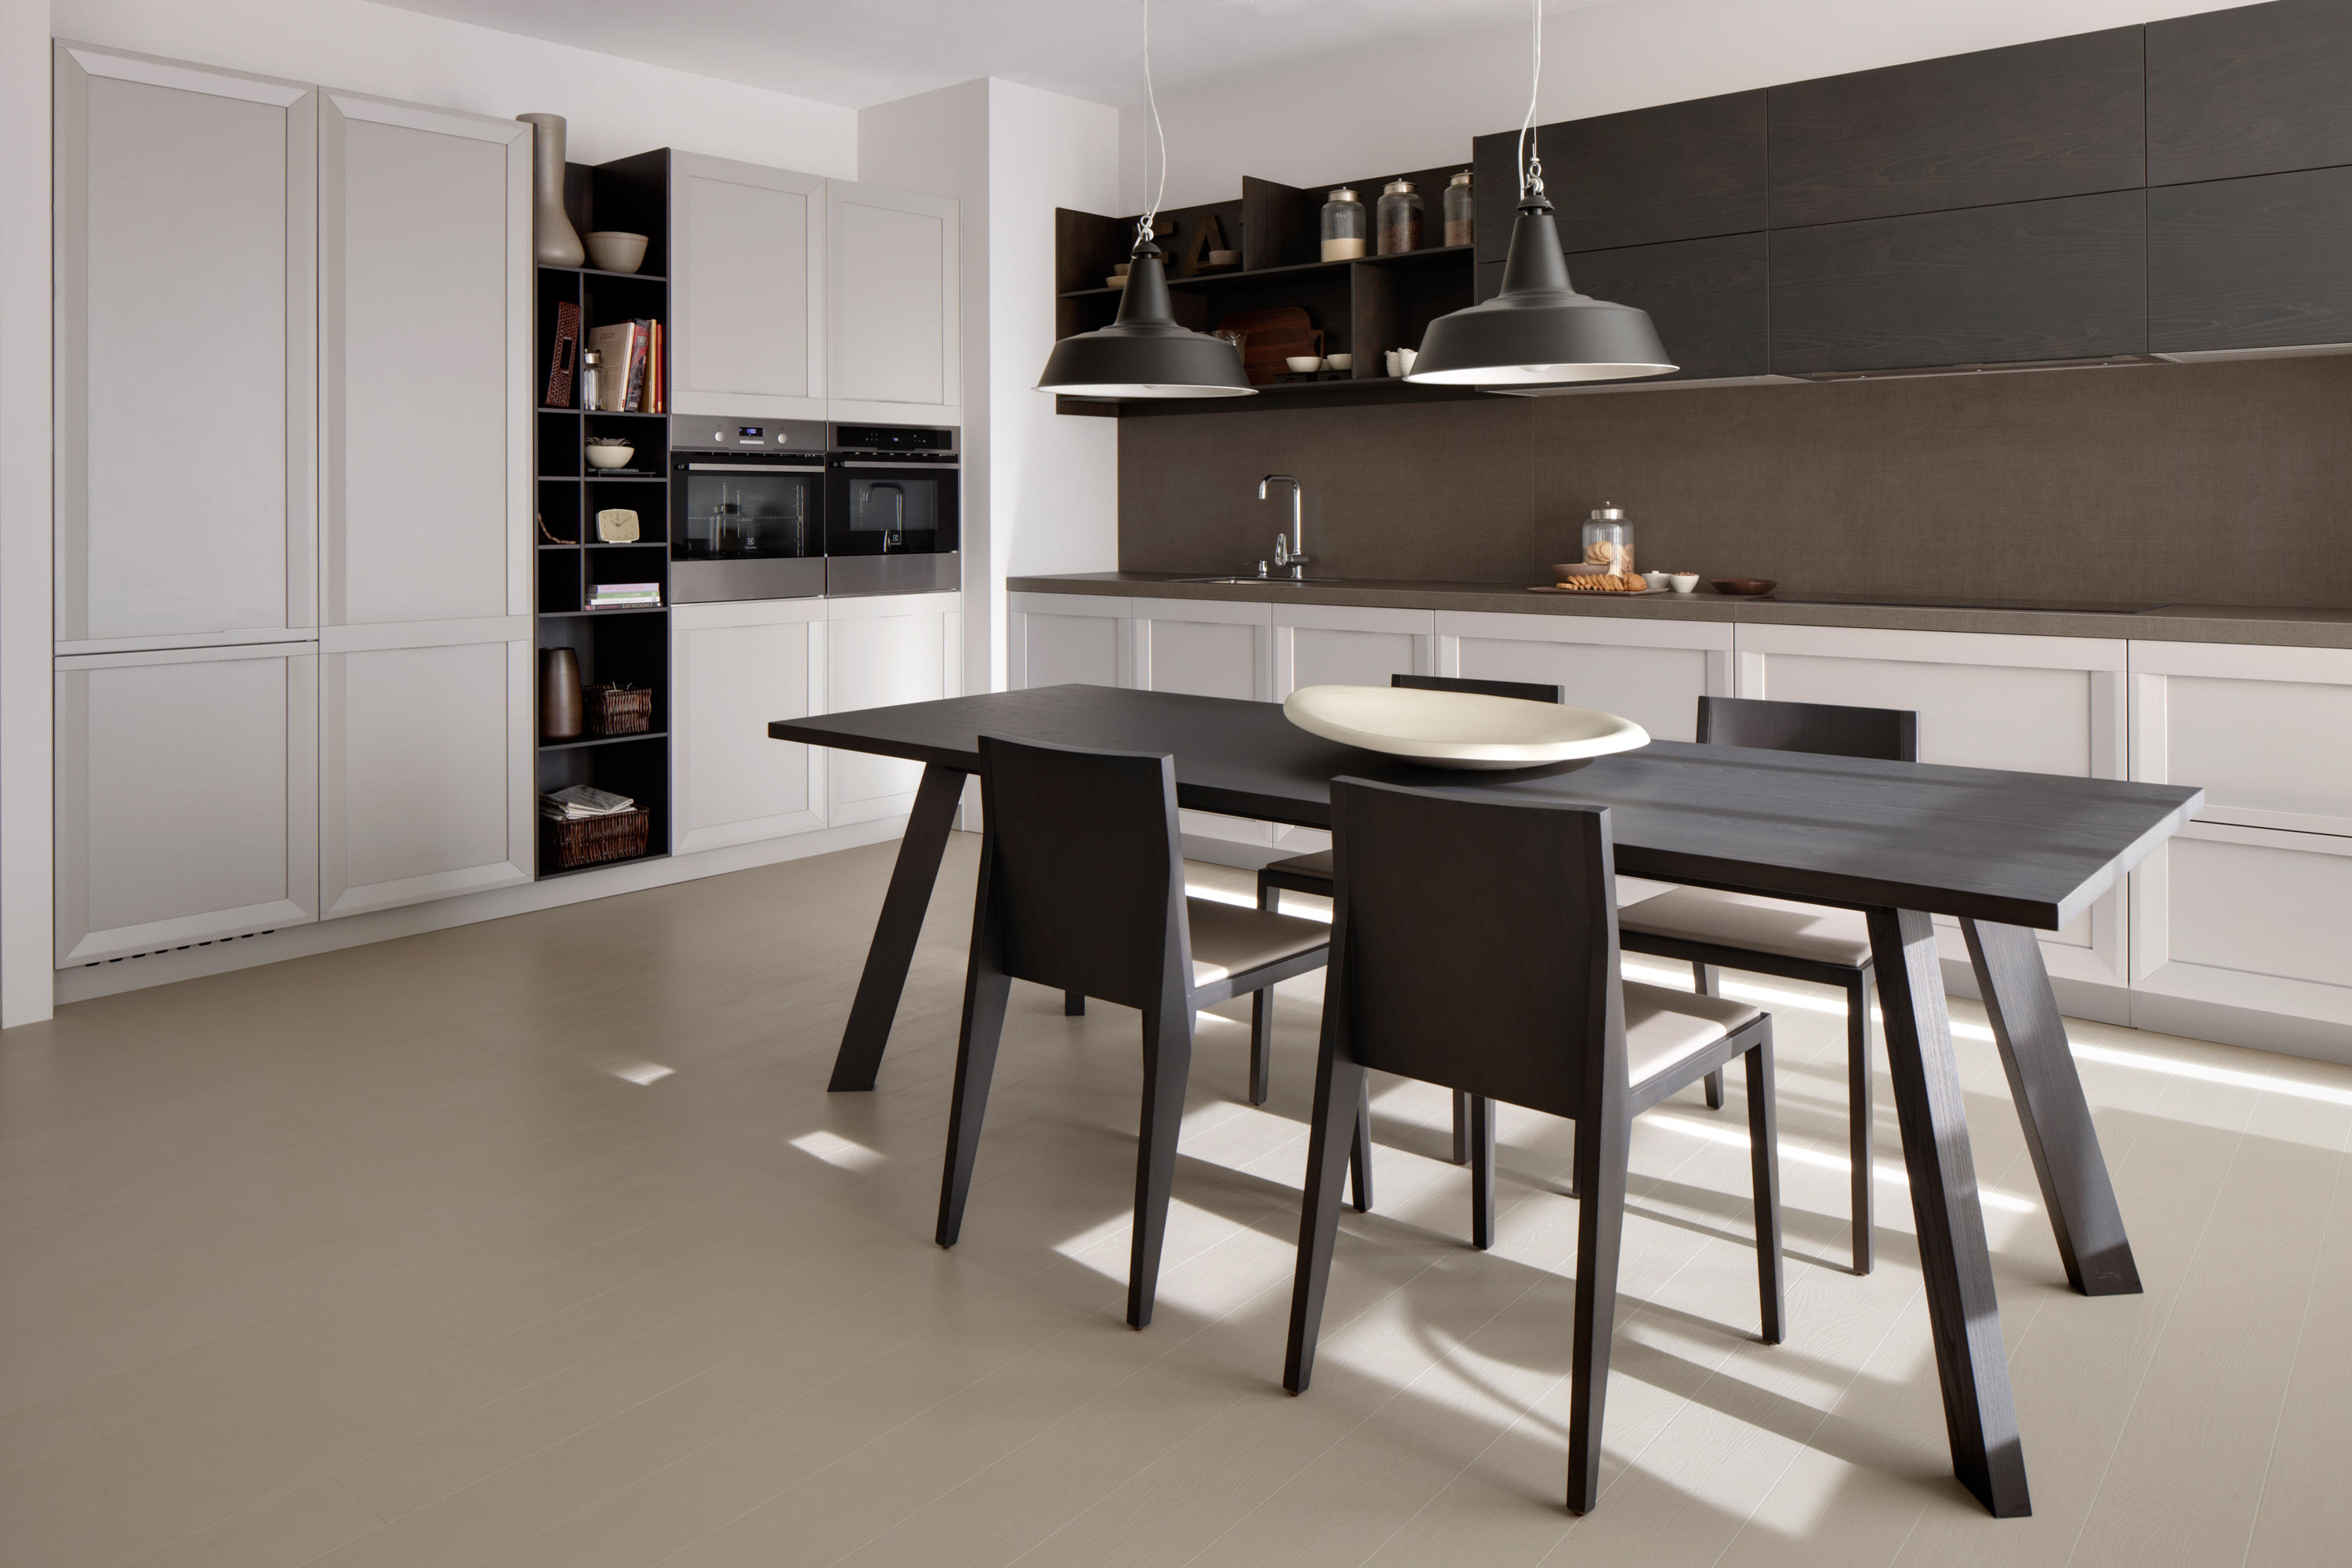 Soho stone fitted kitchens from dica architonic for Cocinas dica precios